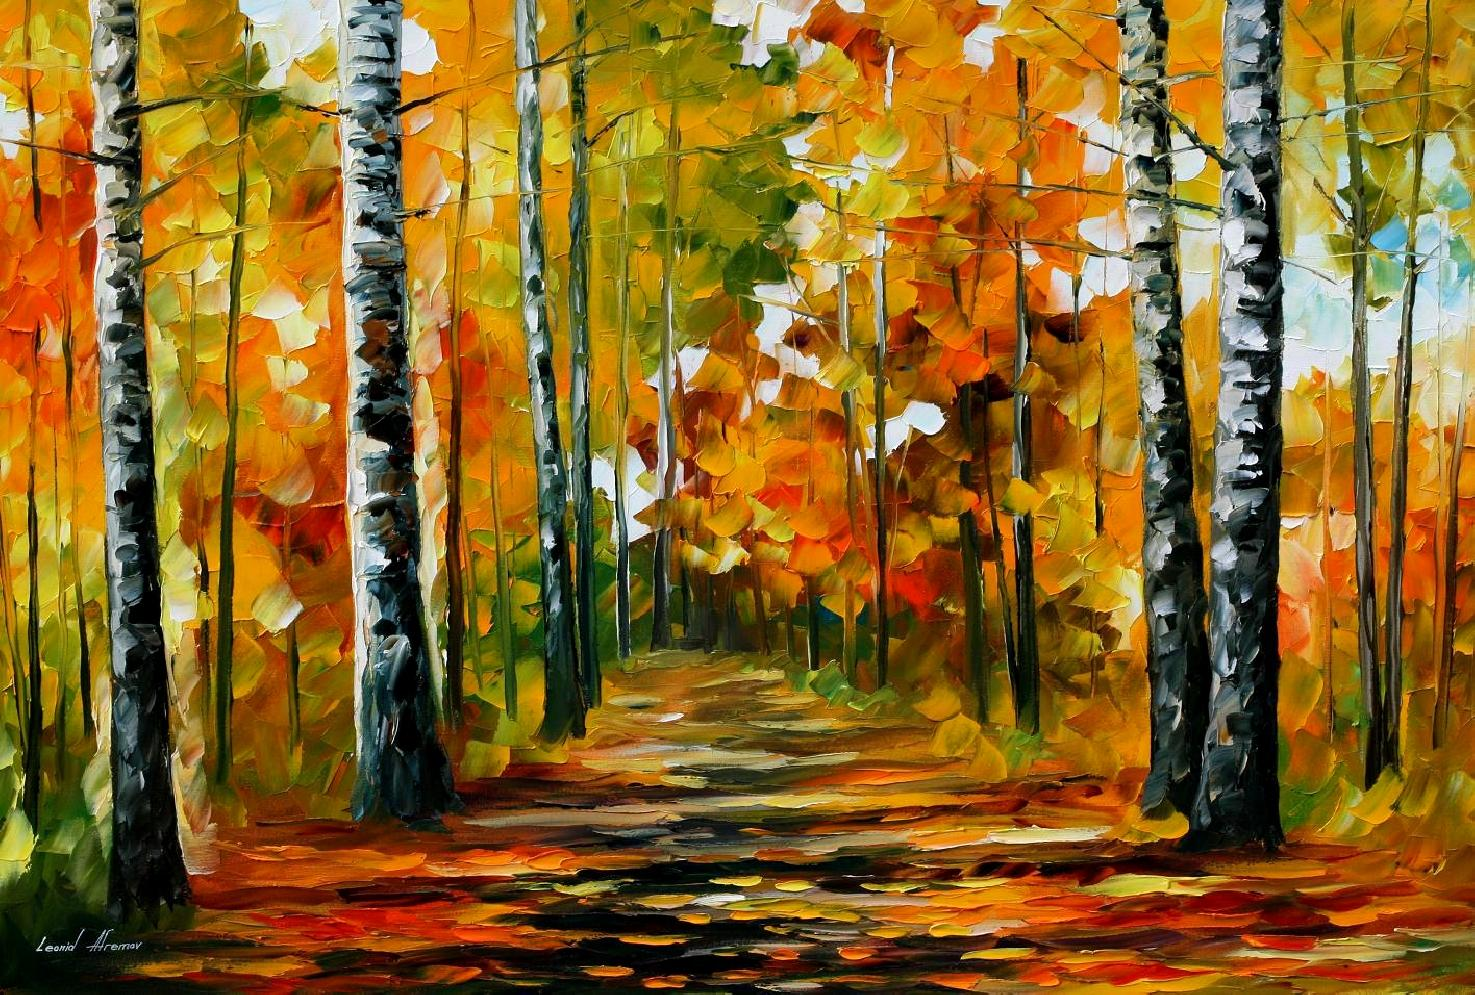 Birch Tree Fall Wallpaper Fiesta Of Birches Palette Knife Oil Painting On Canvas